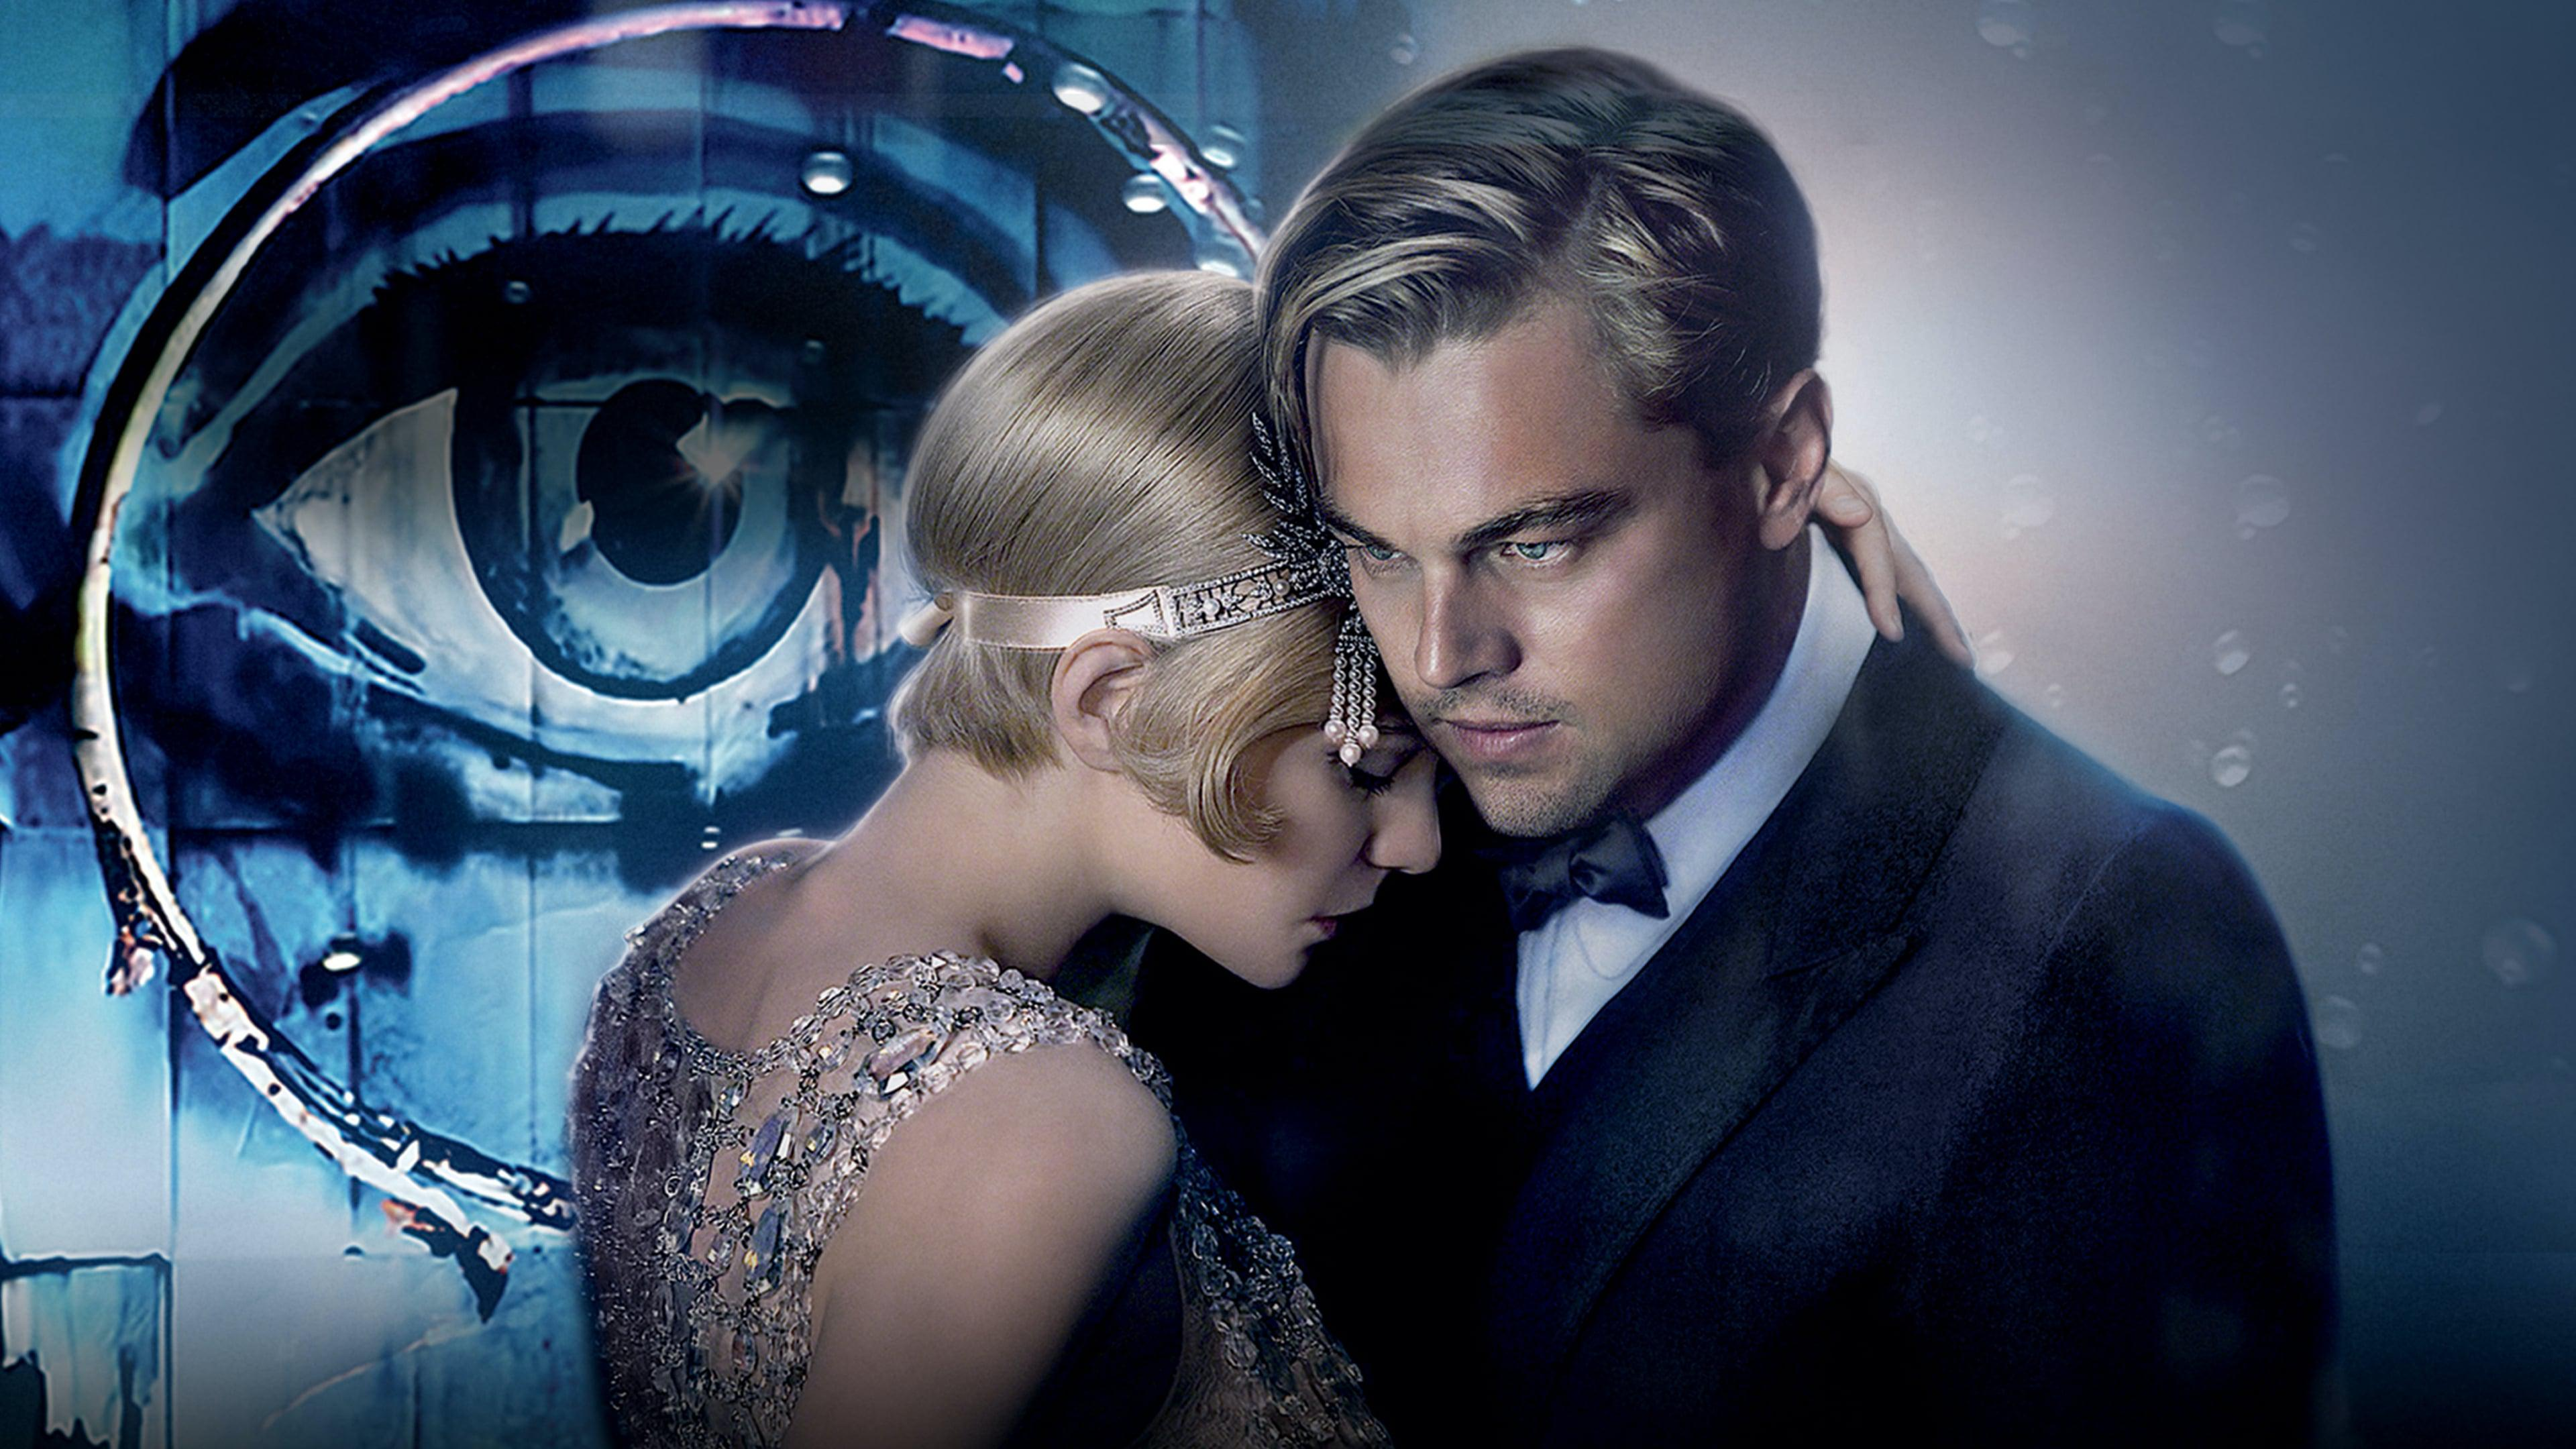 The Great Gatsby 2013 123movies Openloading Com 123movies